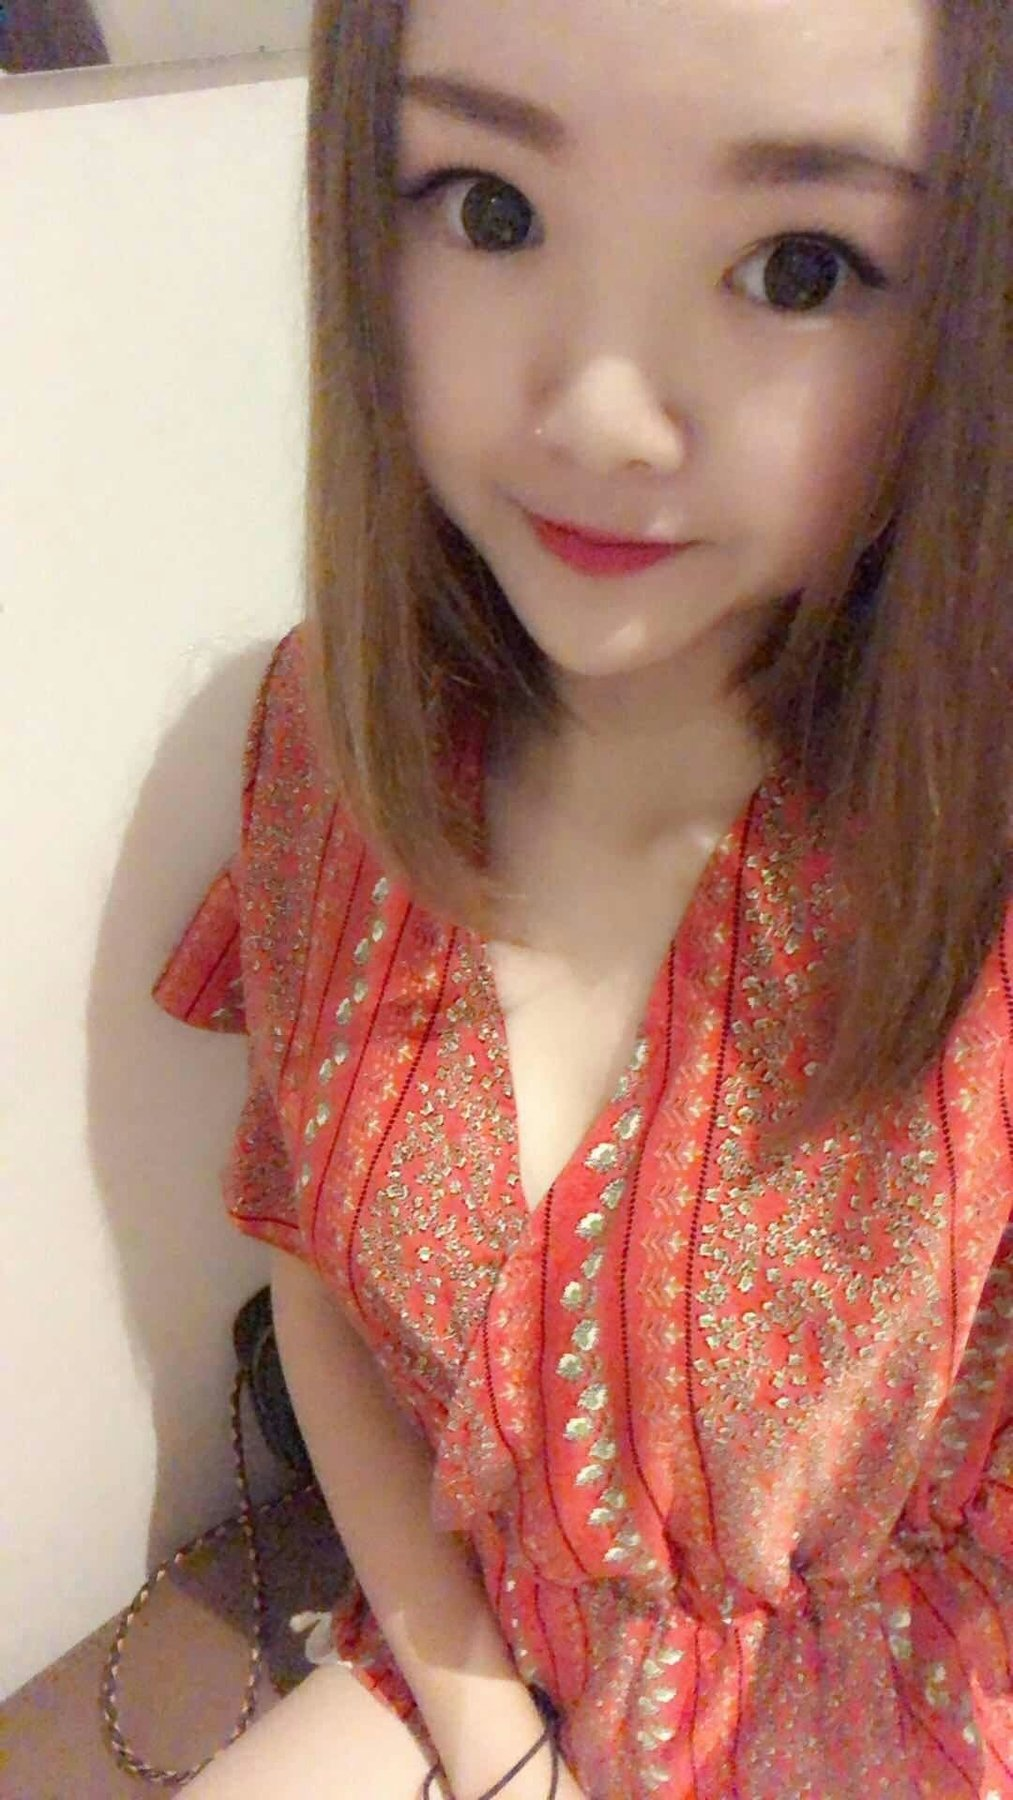 New Young Girls20 Years, Vietnamese Escort In Colombo-2845